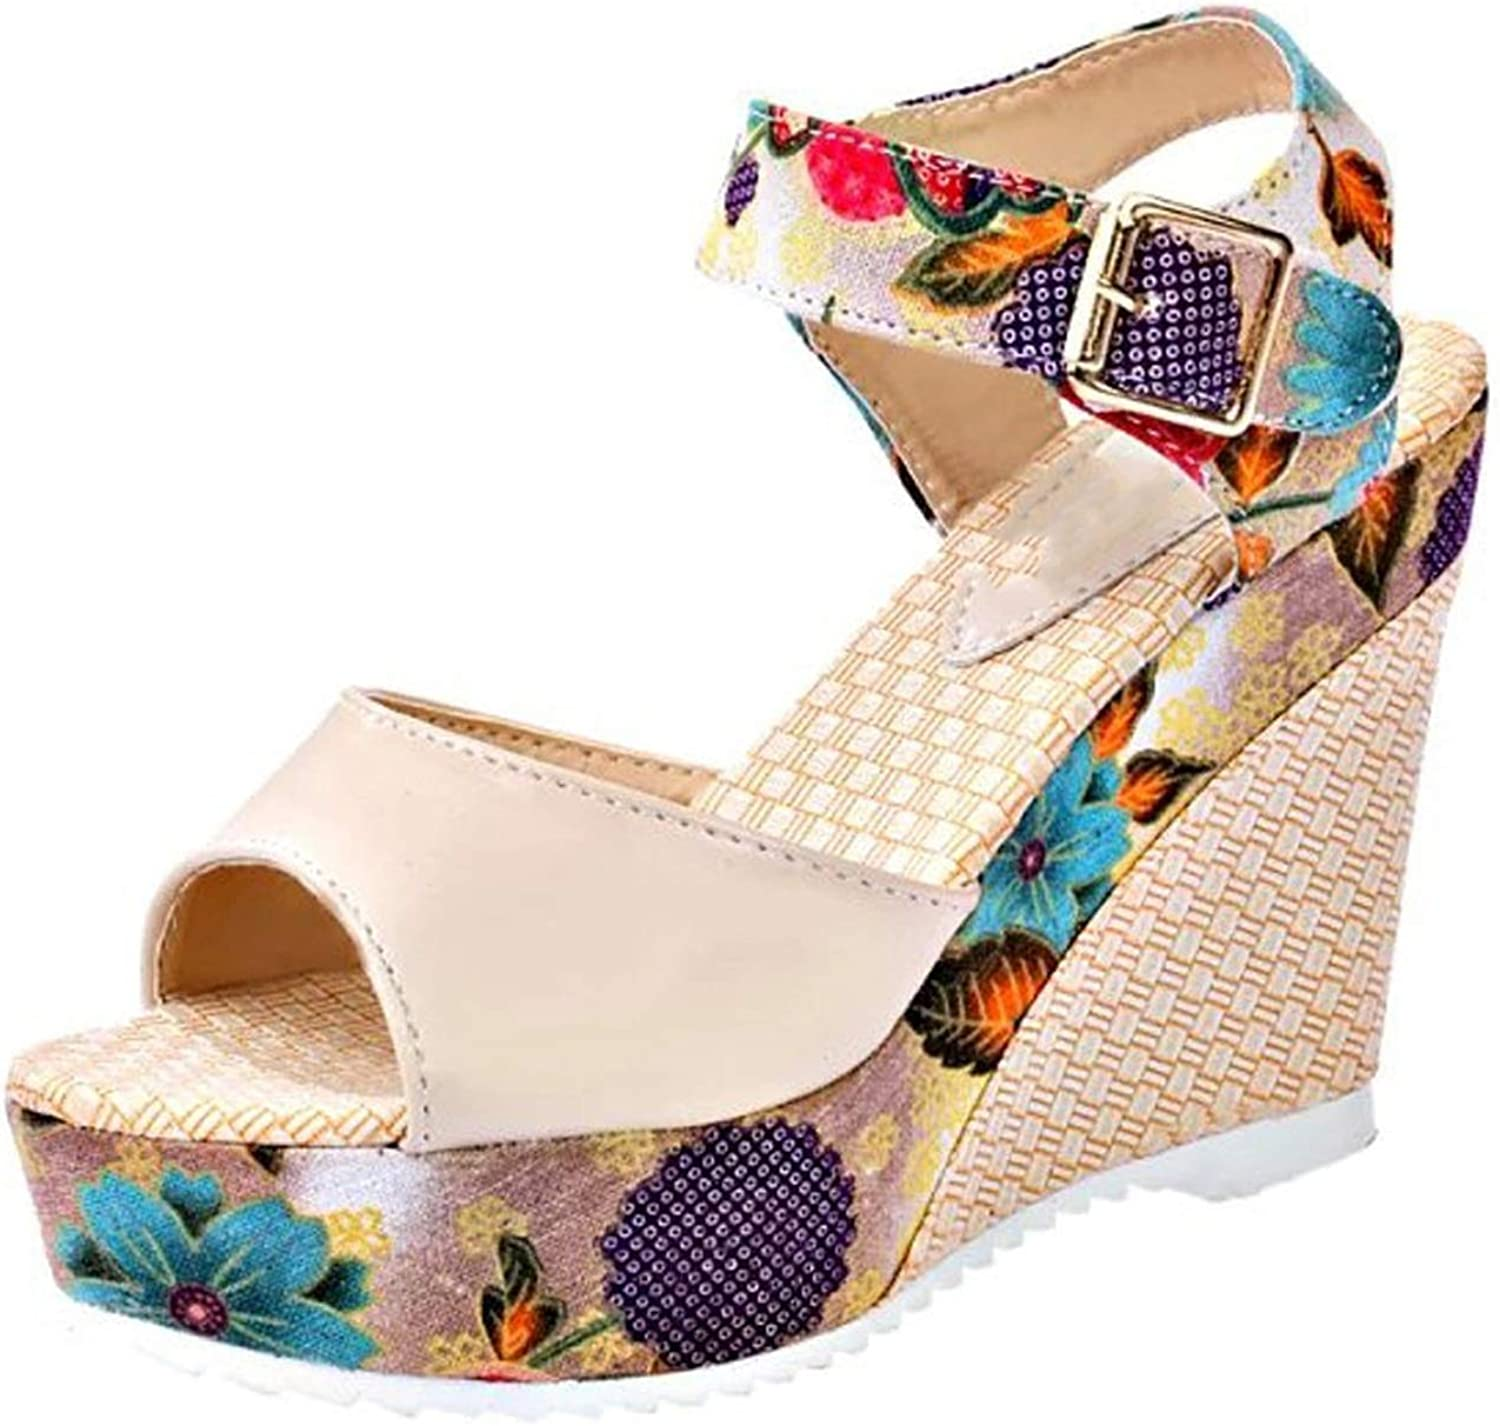 High Heels Sandals Buckle Strap shoes women National Style Slope Sandals